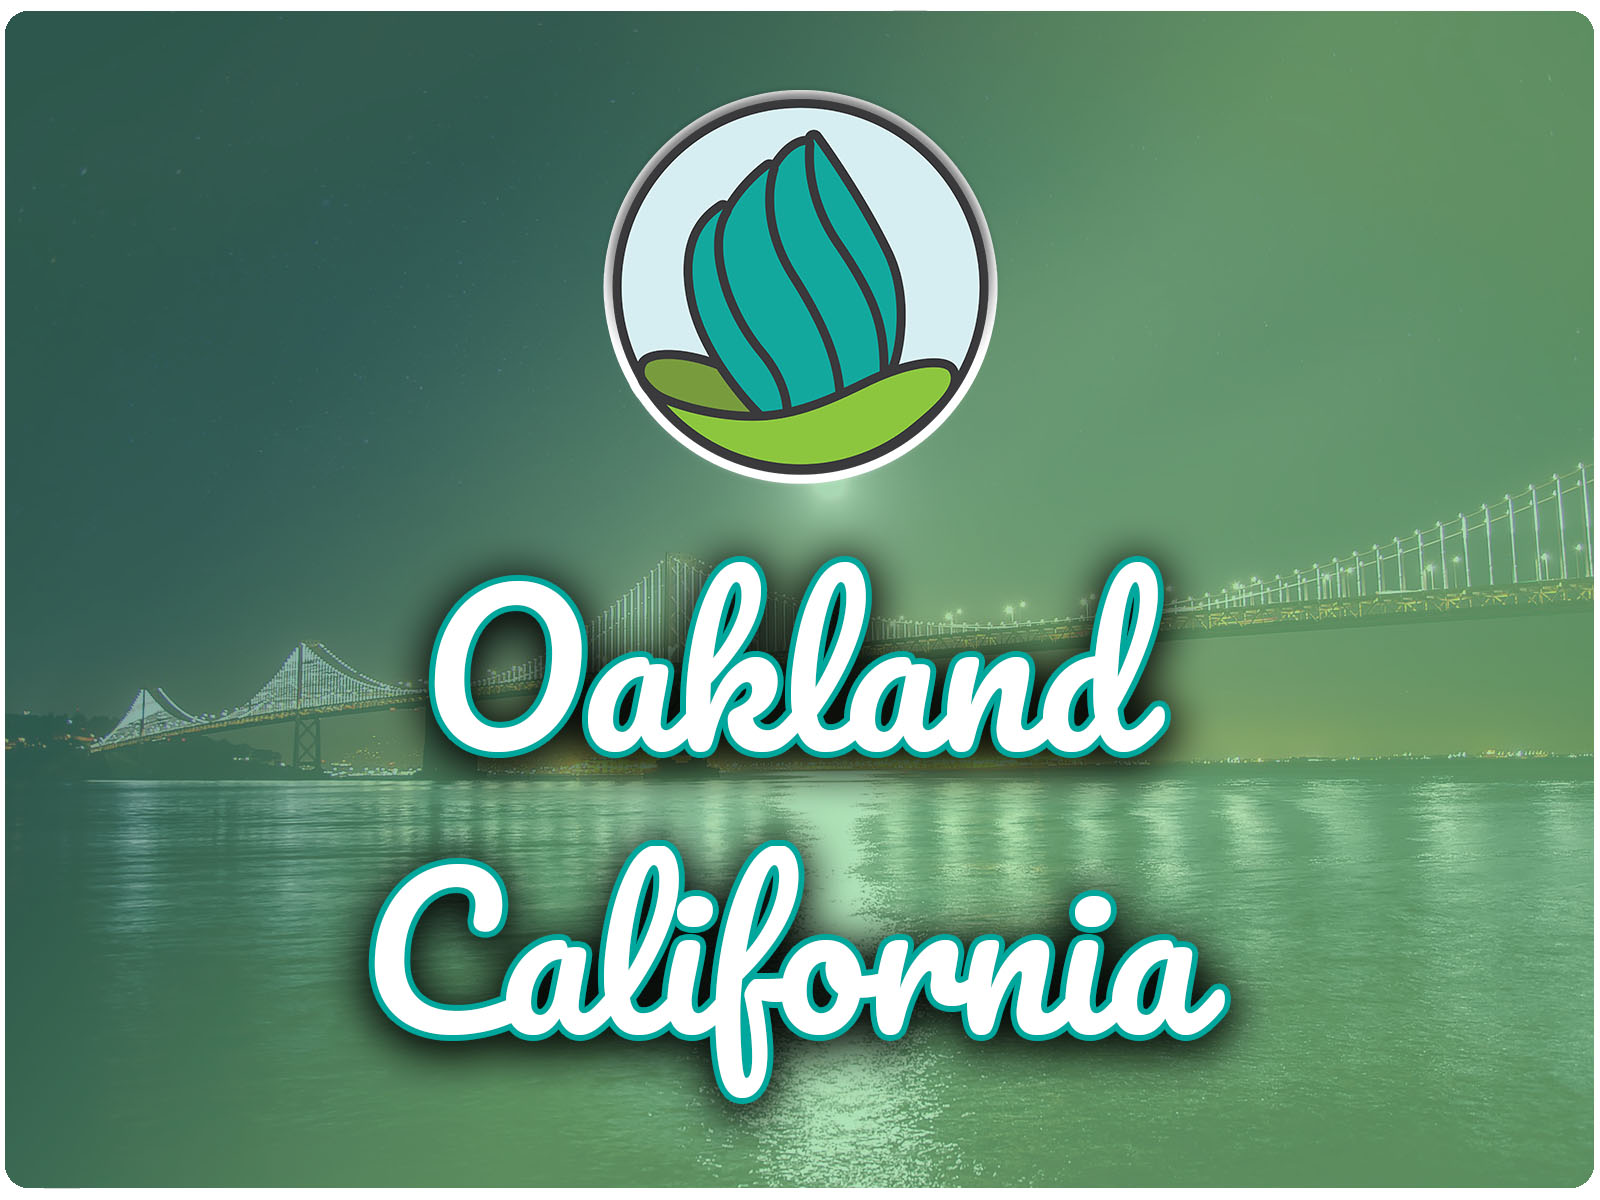 Image of the Oakland Bridge and a blue-green gradient overlay, and the words 'Oakland, California' in cursive and NDC logo on top